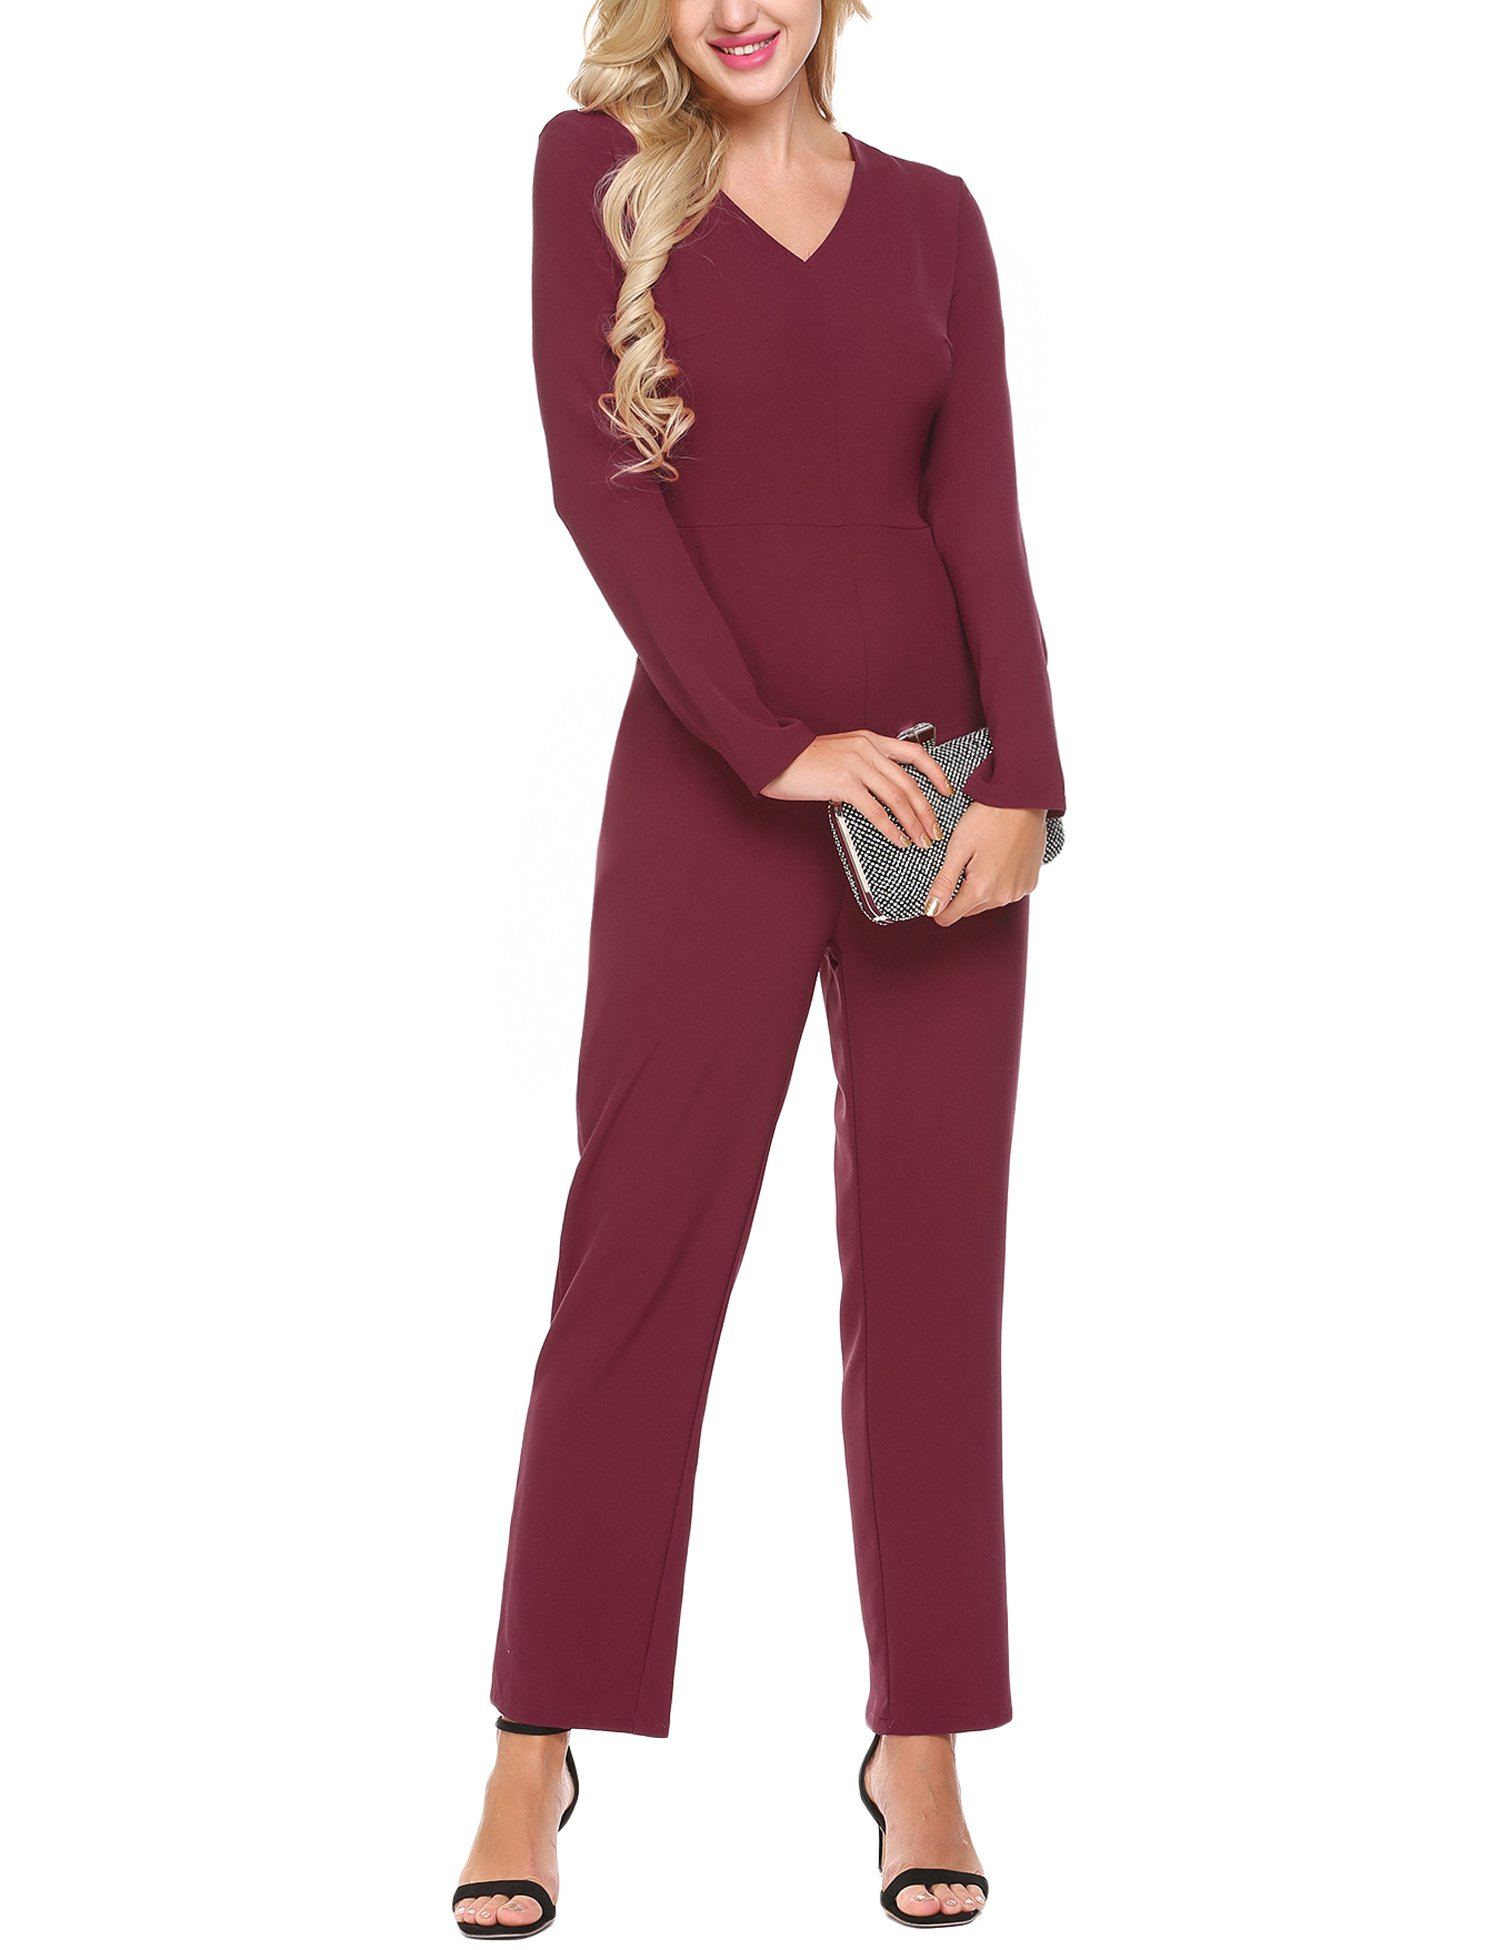 BURLADY Women's Casual V-Neck Long Sleeve Wide Leg Pocket Sexy Jumpsuit Rompers